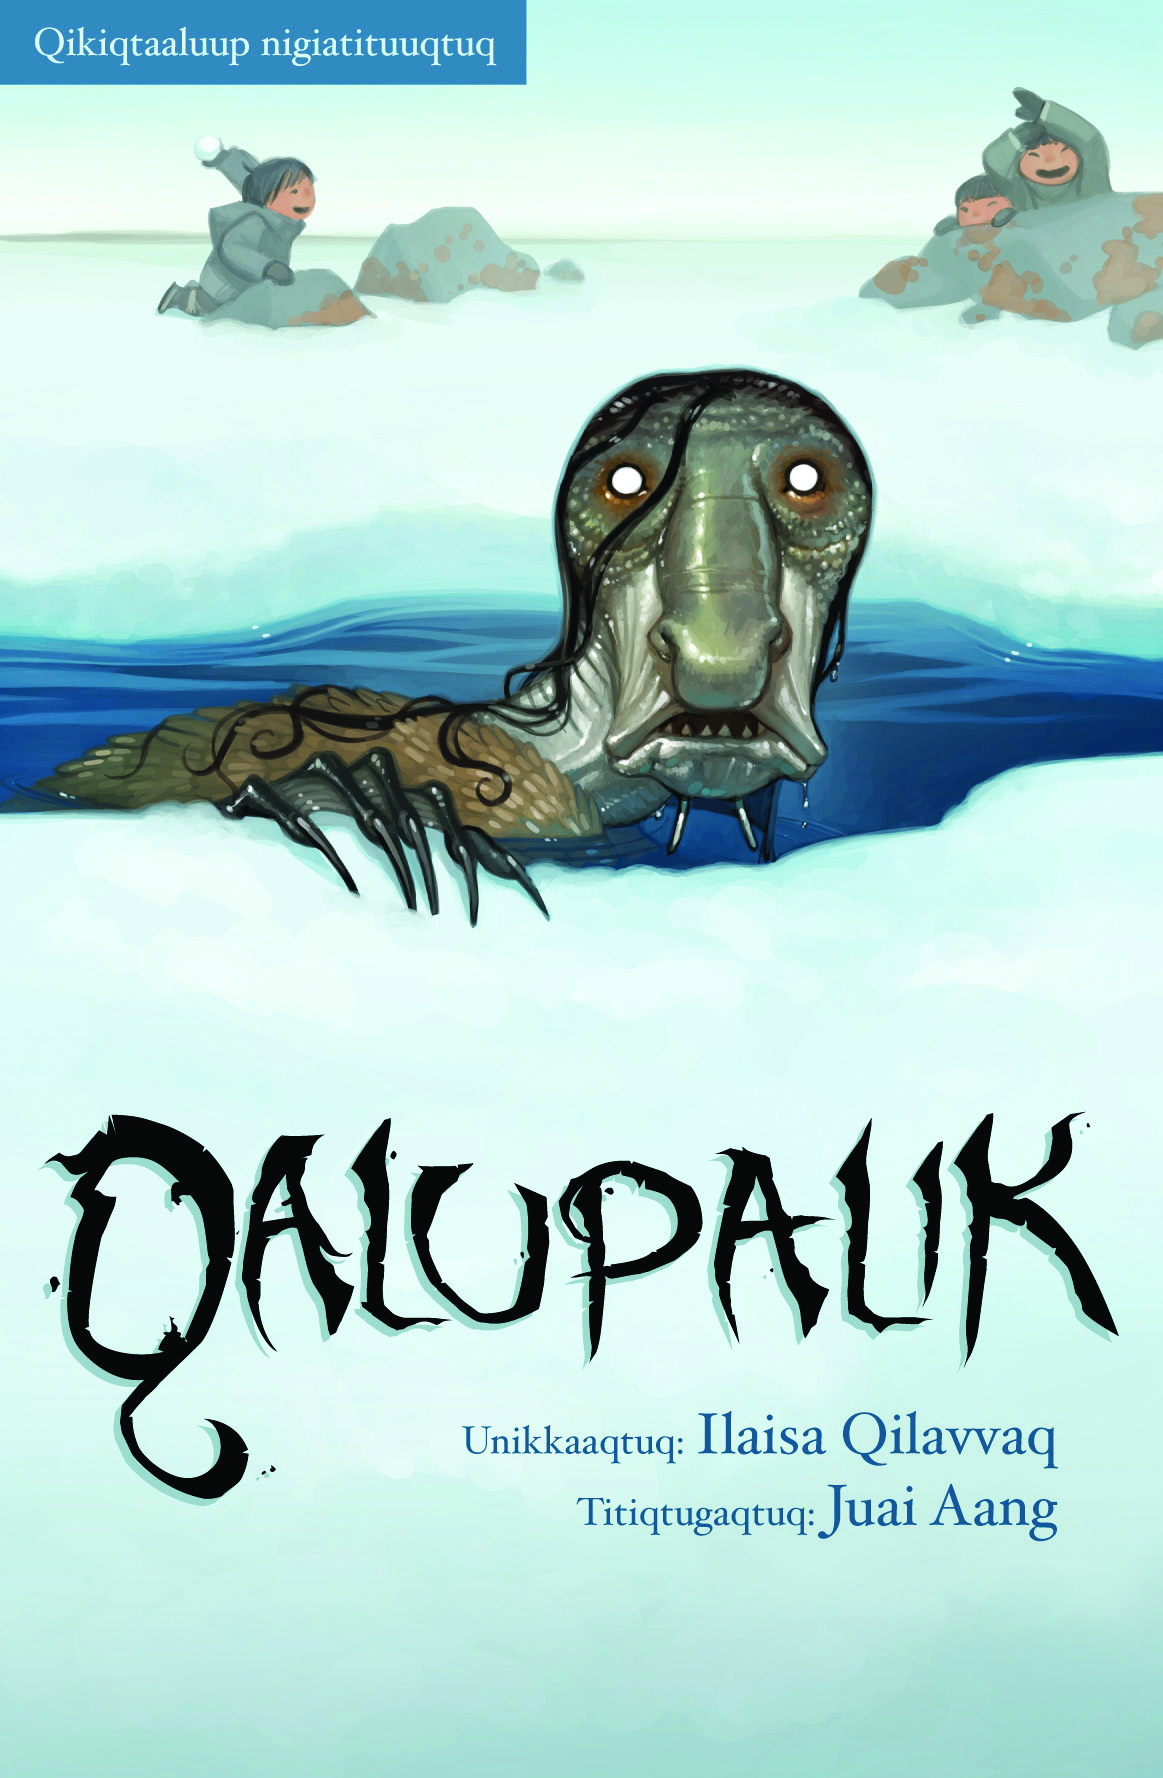 The Qalupalik